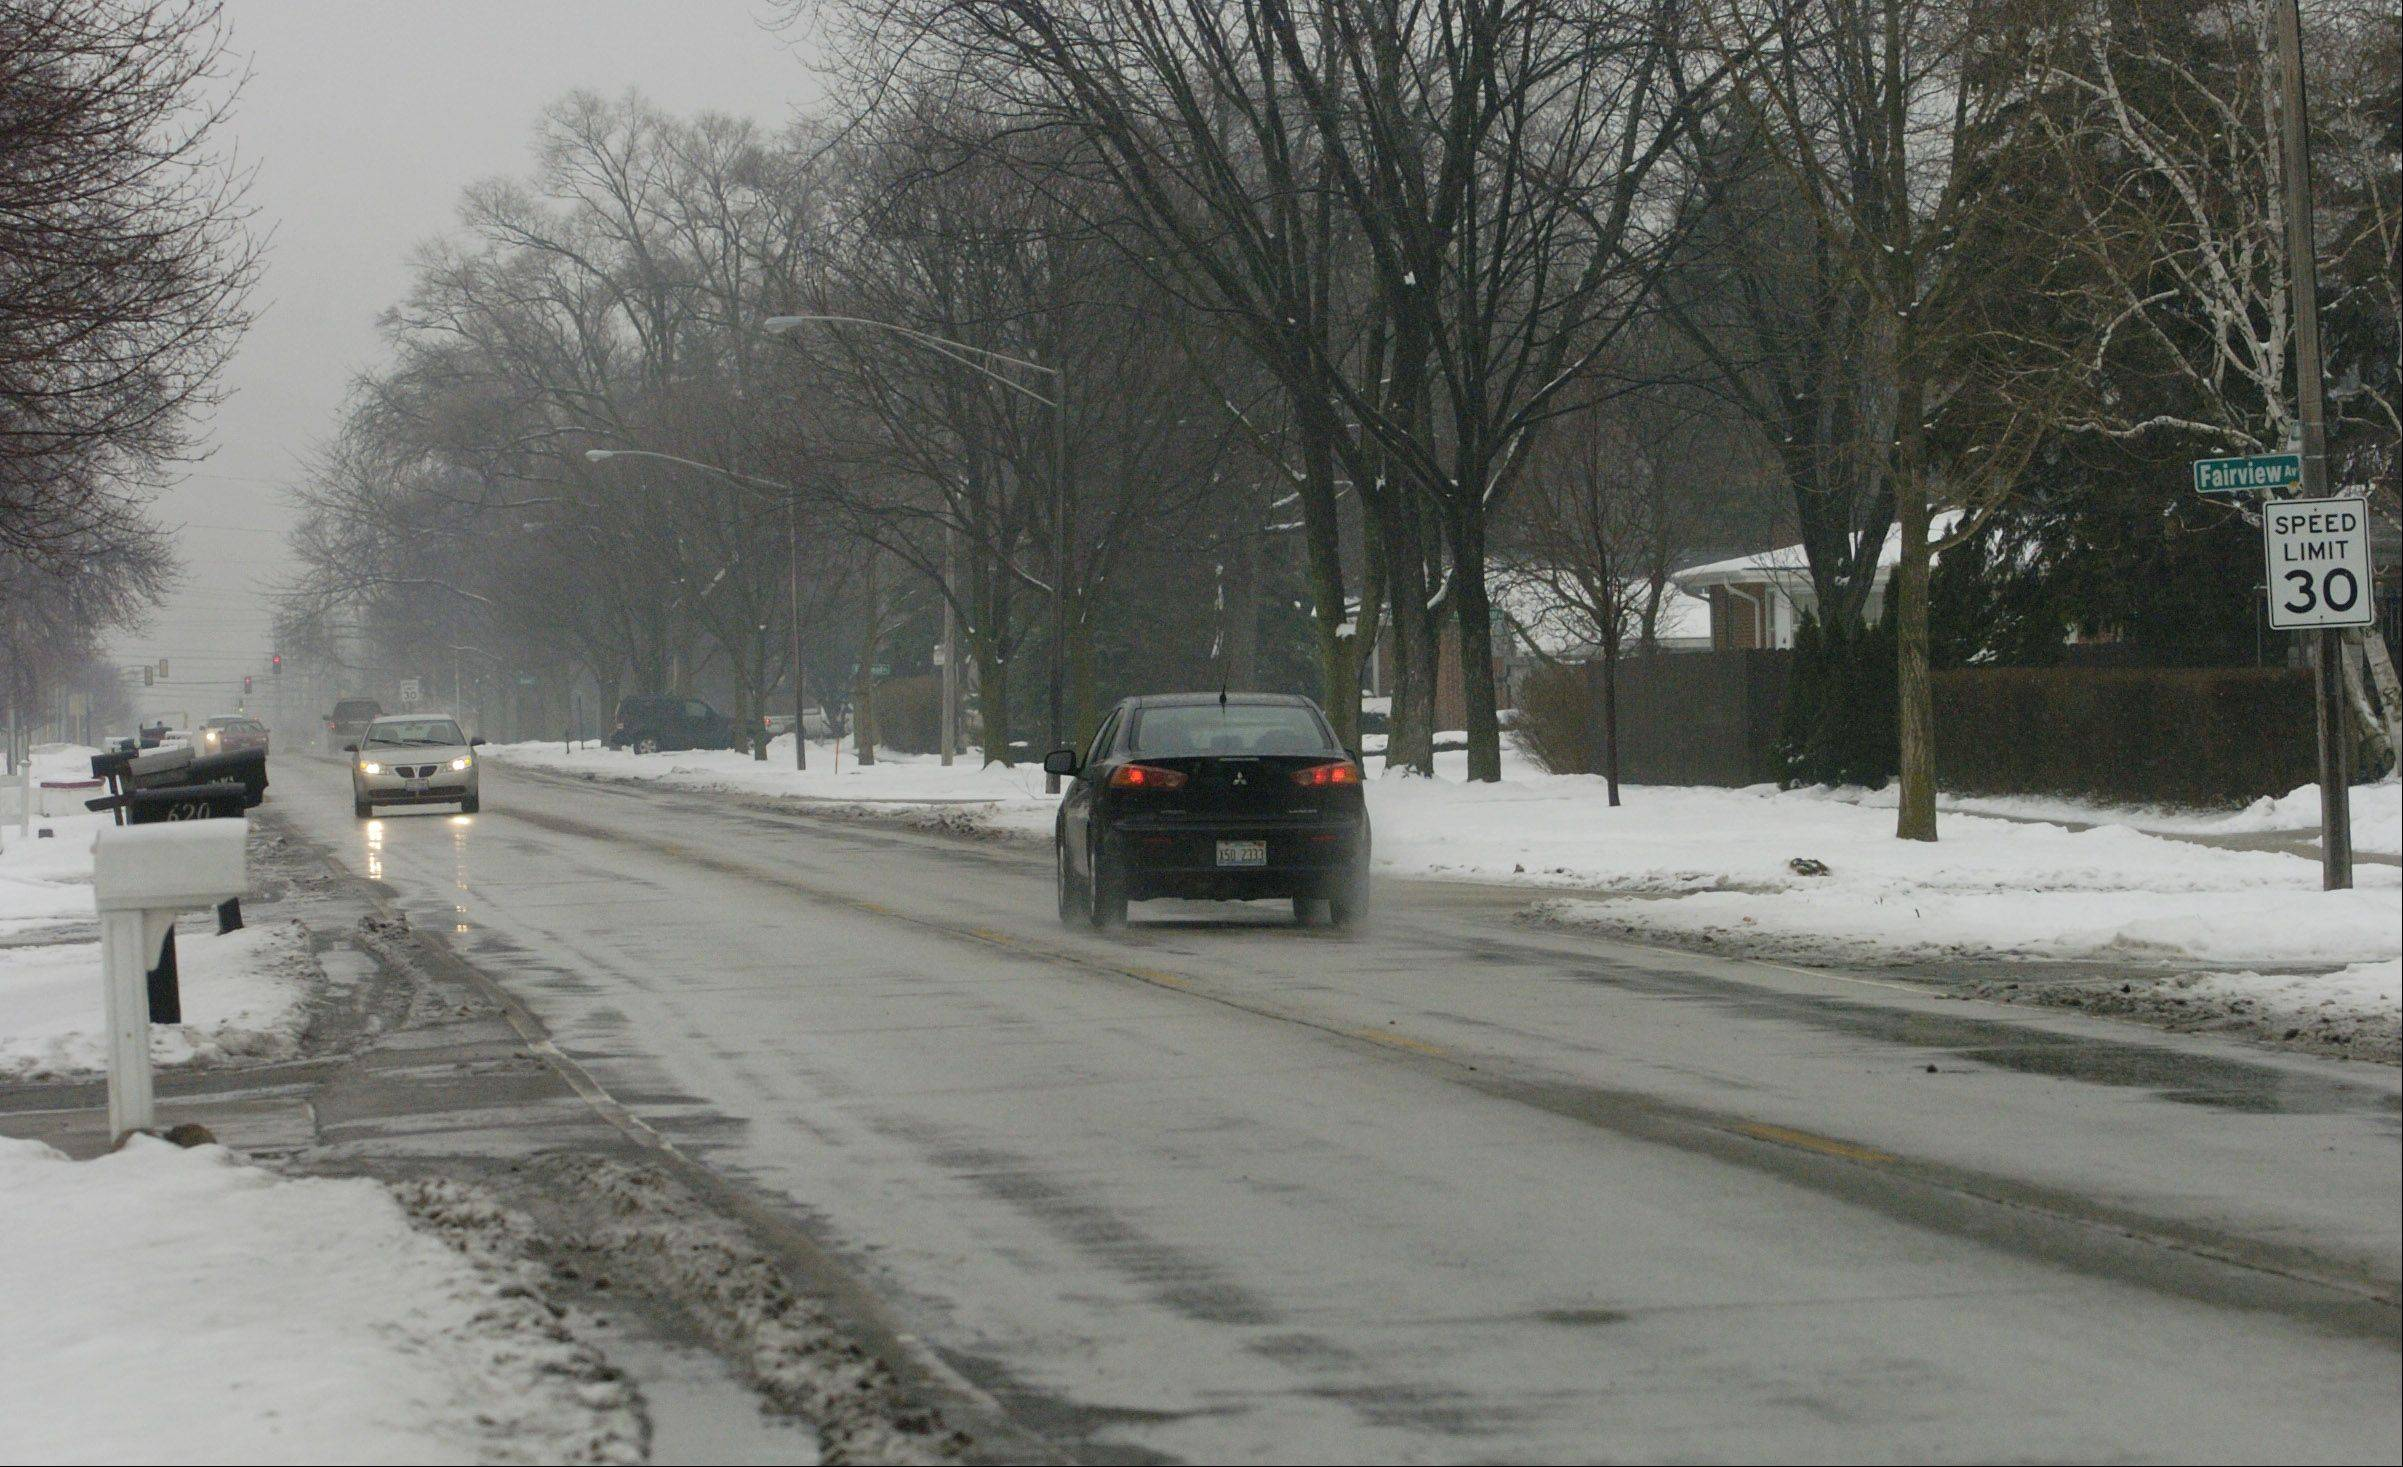 Mount Prospect has agreed to take jurisdiction of a stretch of Kensington Road between Forest Avenue and Elmhurst Road later this year after the Illinois Department of Transportation completes at $3.3 million reconstruction project.